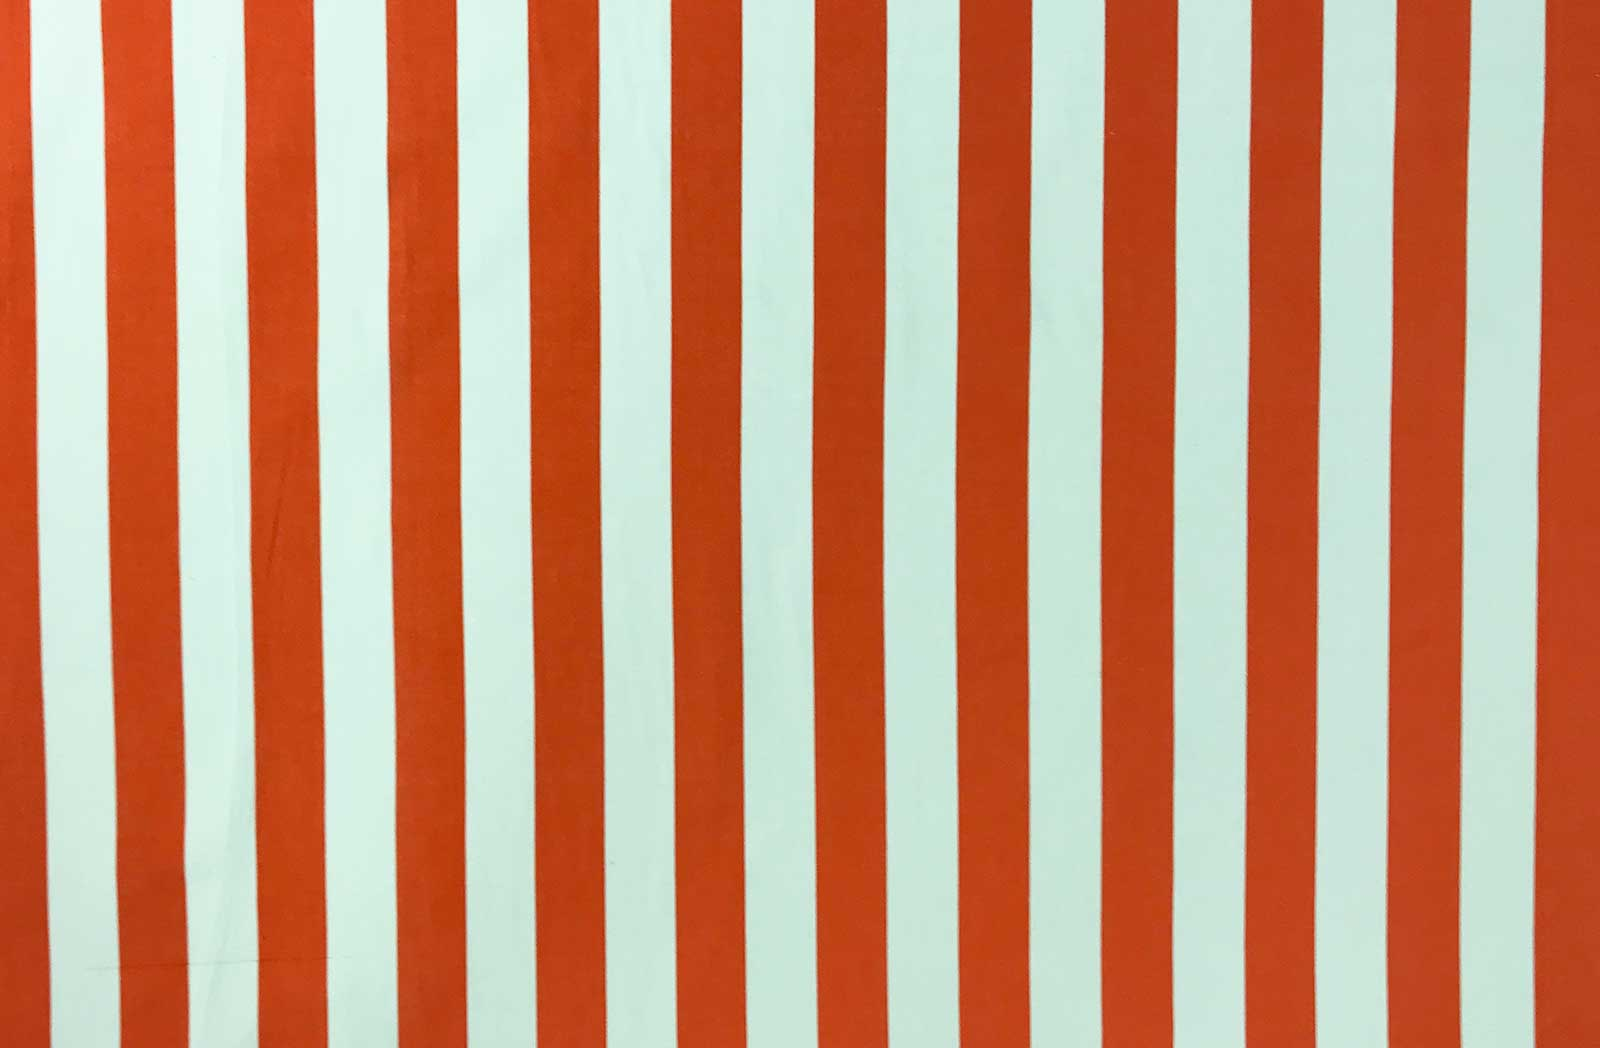 Orange and White Striped Fabric | Orange and White Stripe Curtain Fabrics